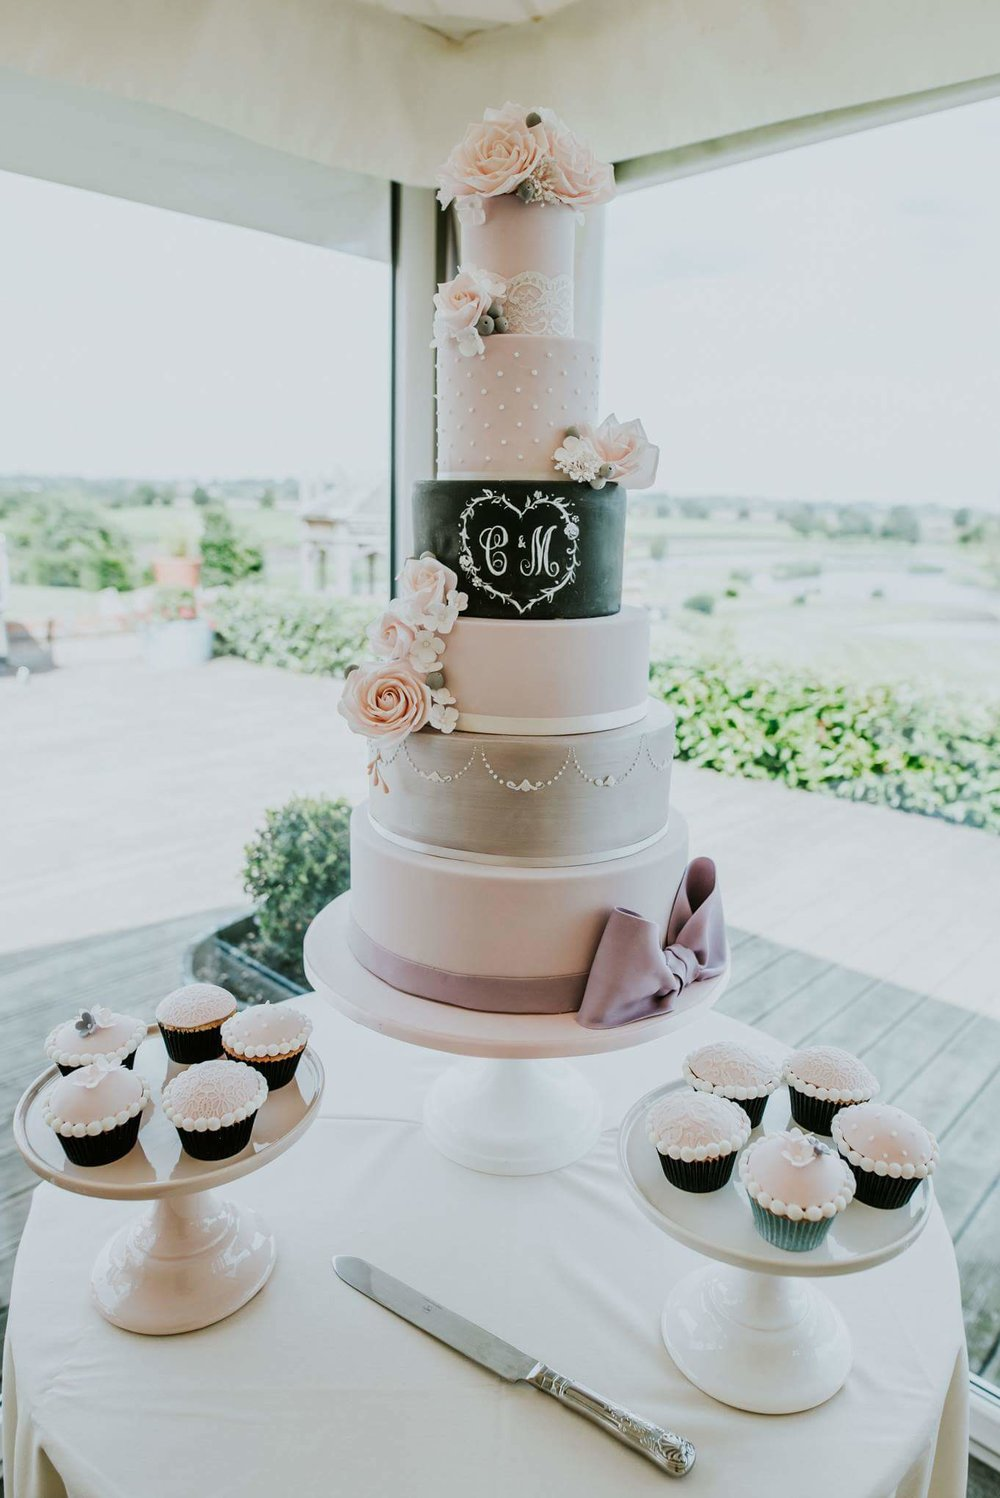 Beautiful fondant wedding cake by Meadowsweet Cakes, set up at The Old Hall Ely